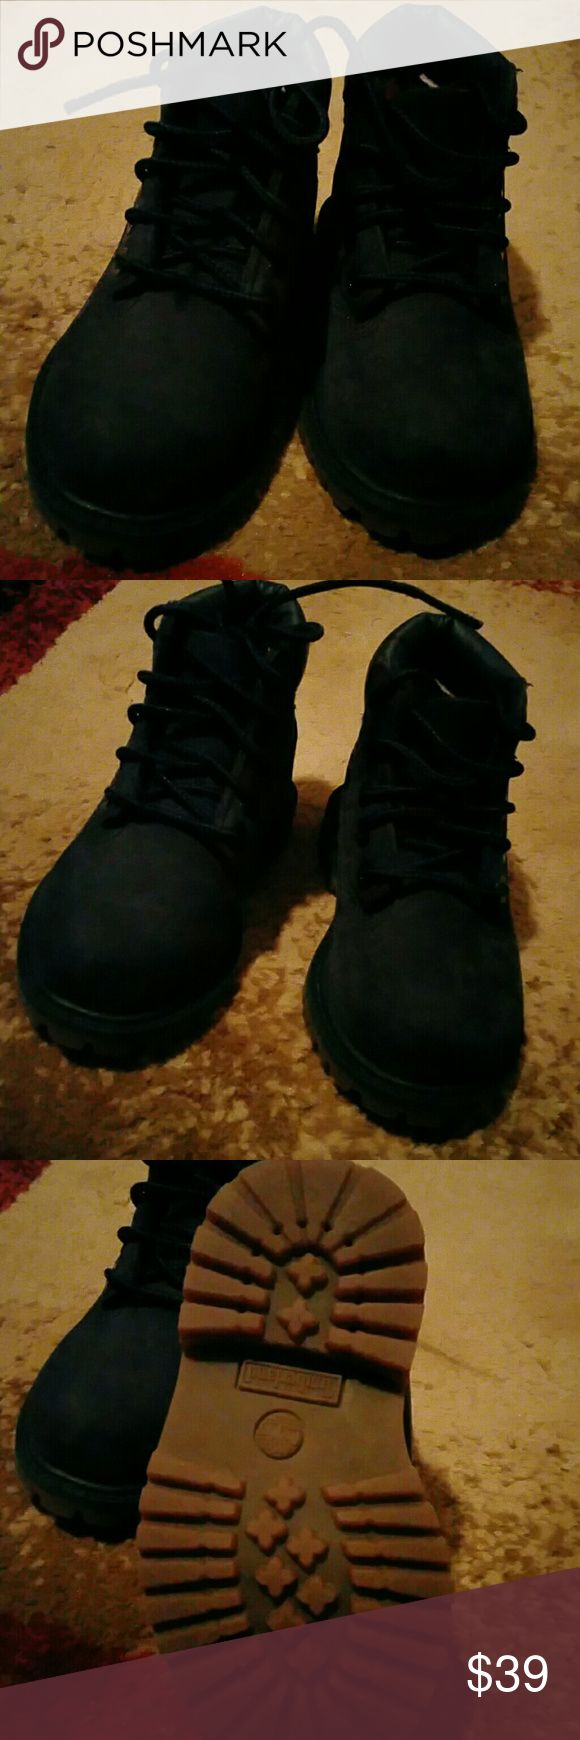 Toodler Timberland boots size 4. 5 Navy blue Timberland Shoes Ankle Boots & Booties